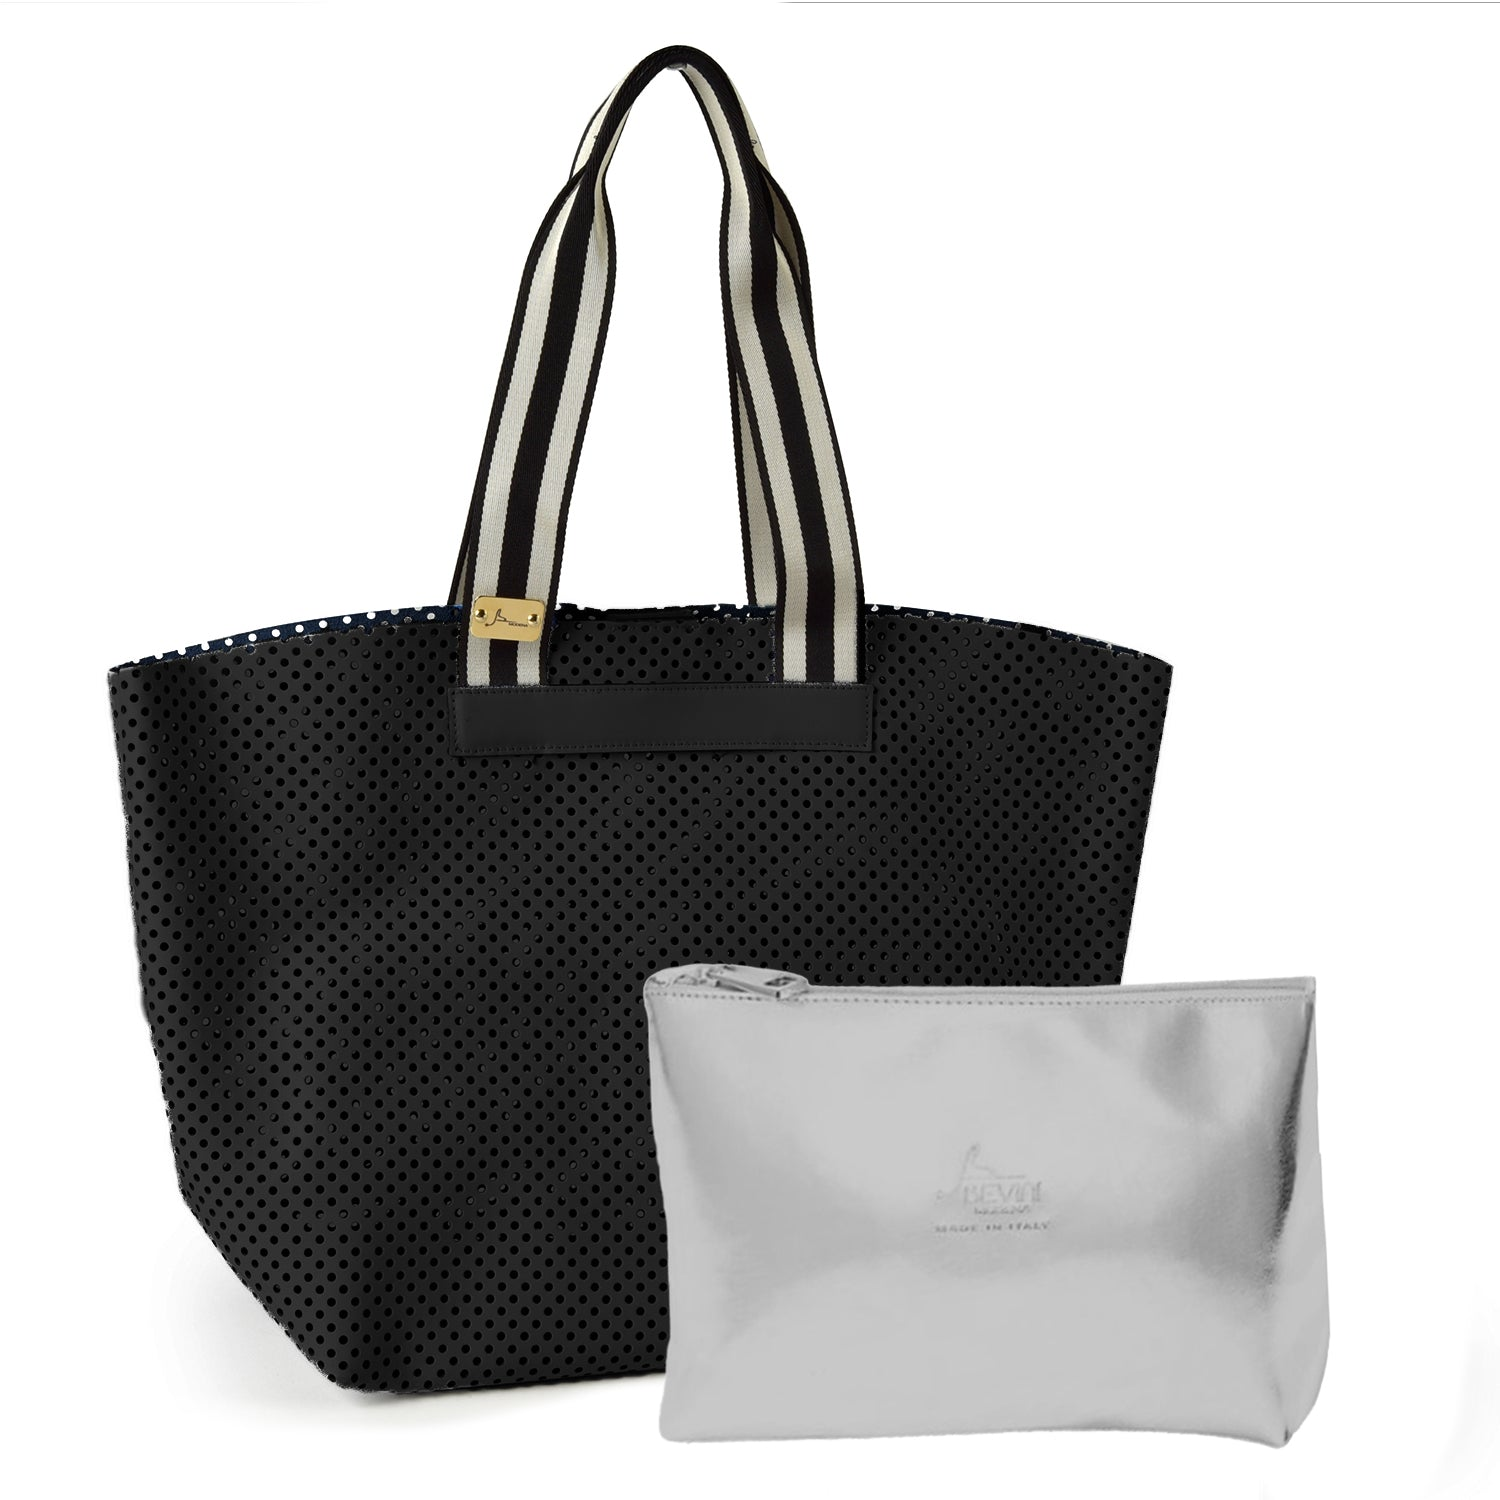 Soave Perforated Large Leather Tote Bag (Q11)